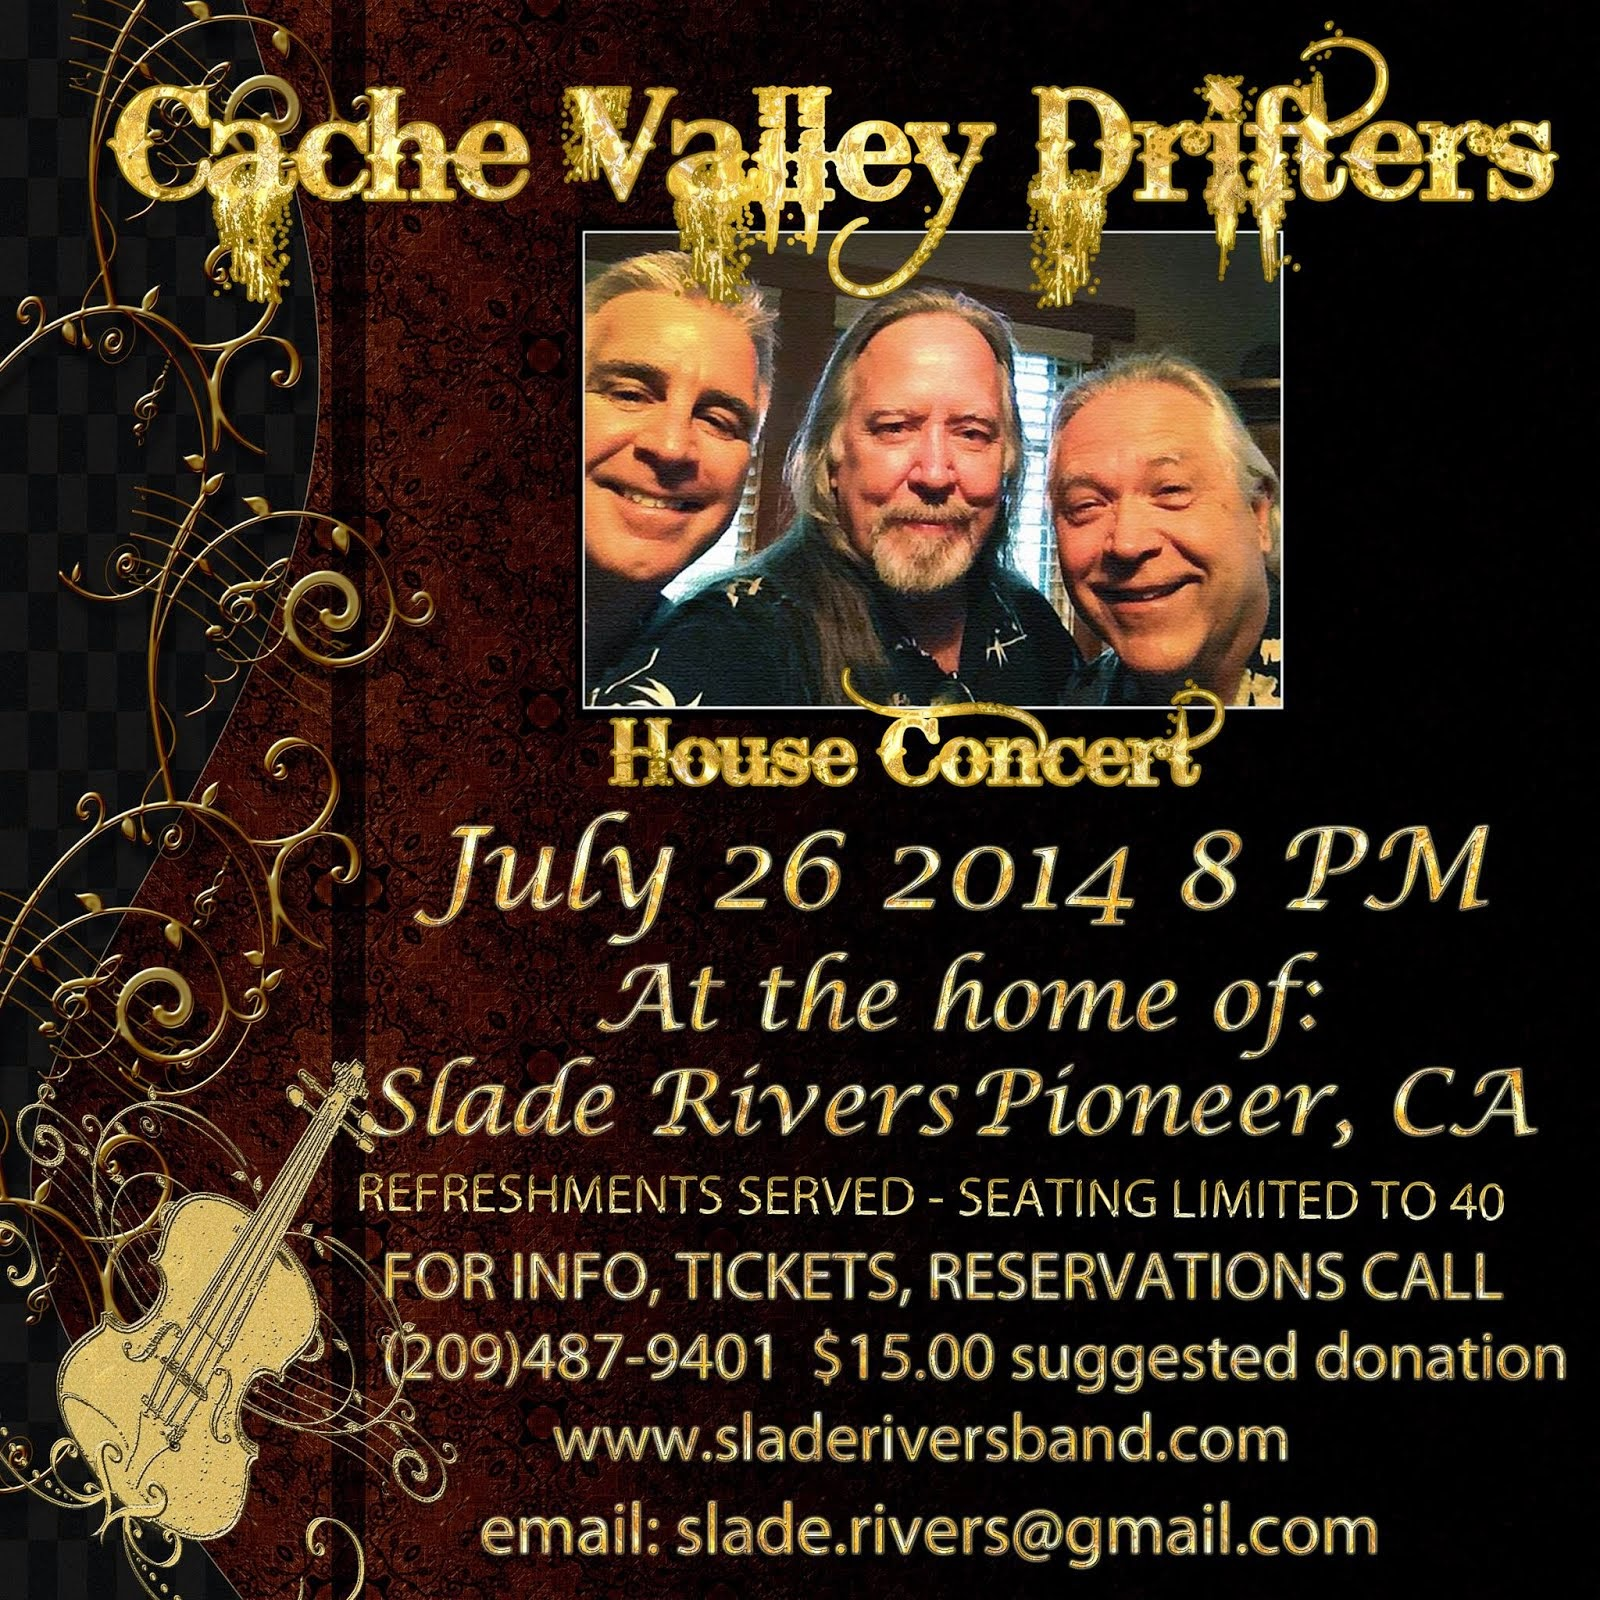 Cache Valley Drifters - Sat July 26